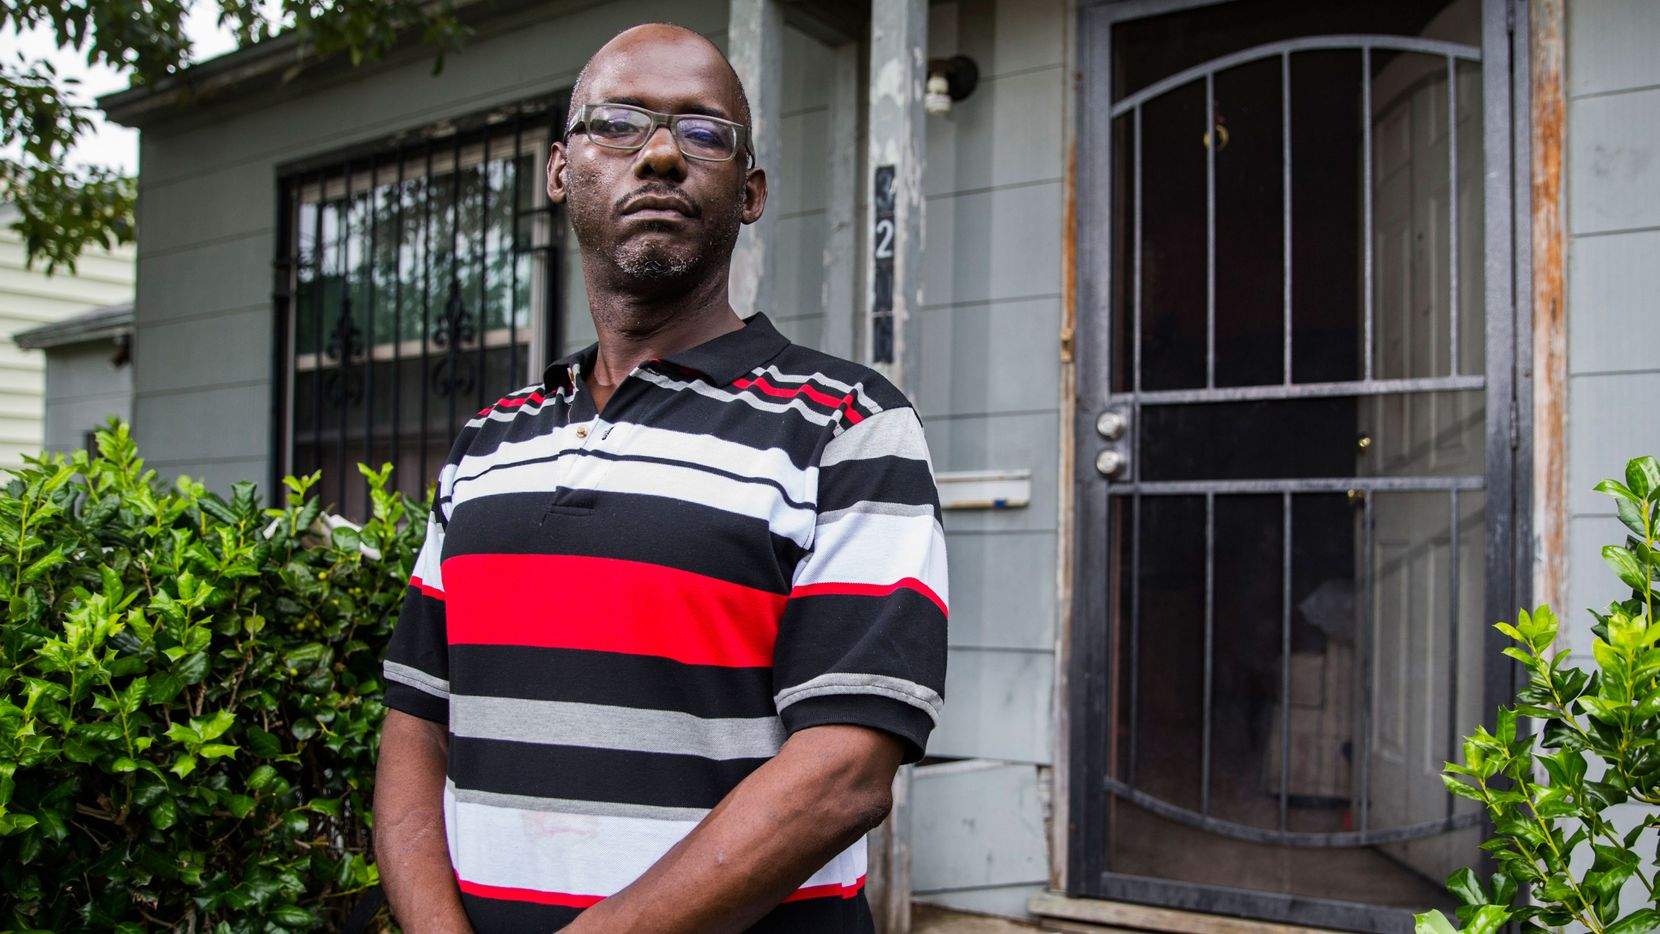 Edward Adkins poses for a portrait outside his home on Tuesday, August 16, 2016 on Arizona Ave in Dallas. Adkins owes $420 for a bicycle helmet ticket.